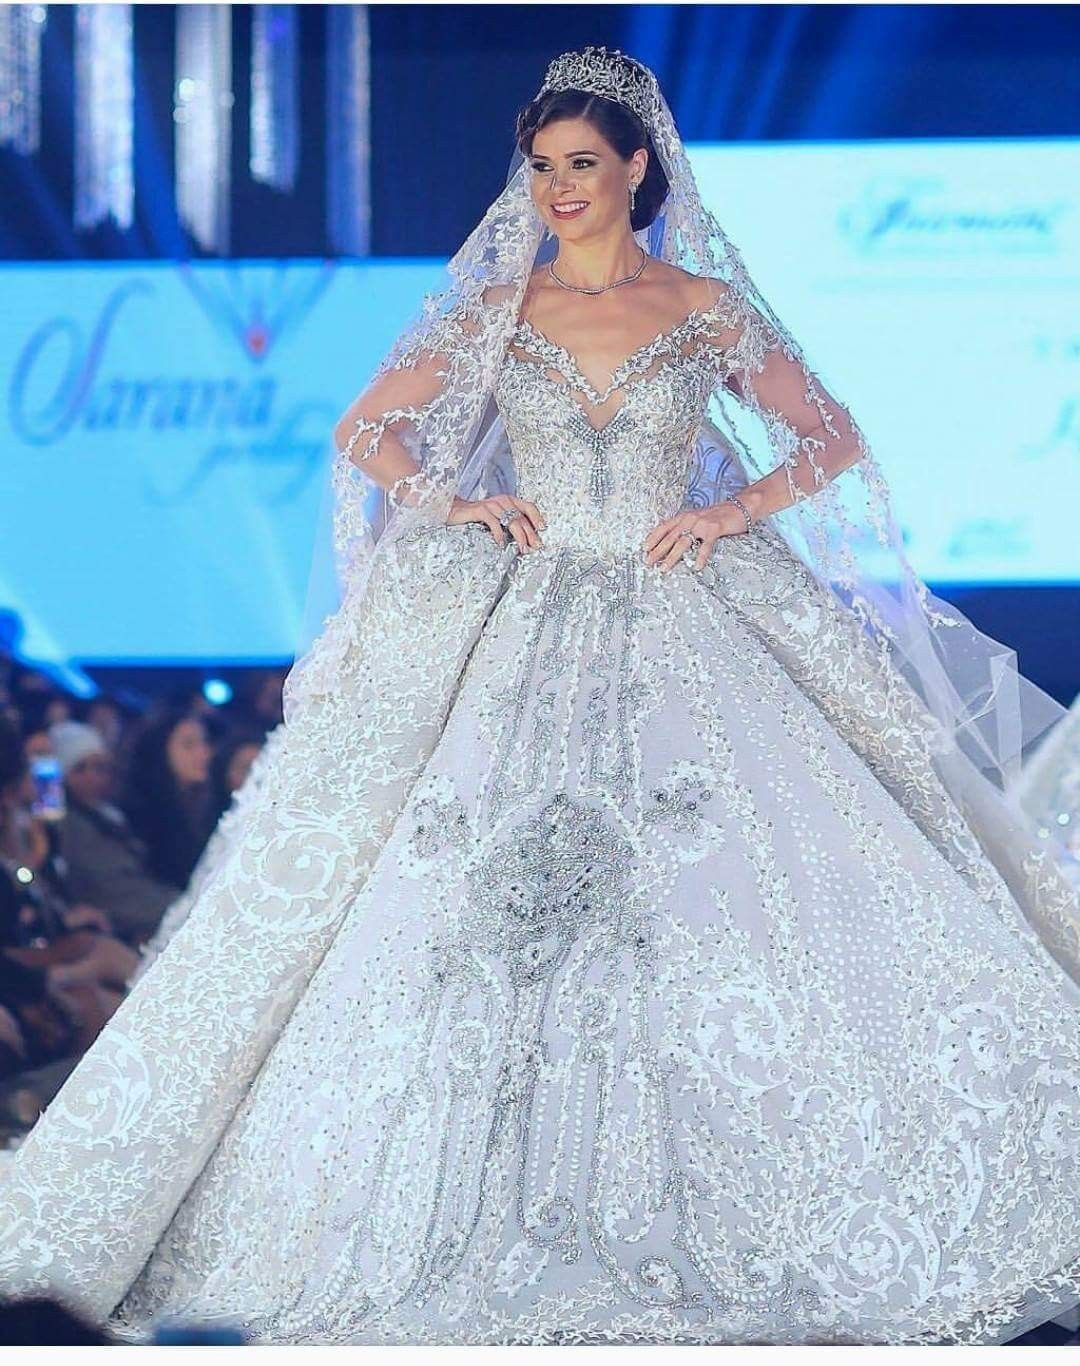 The most expensive wedding dress in the world by fashion designer